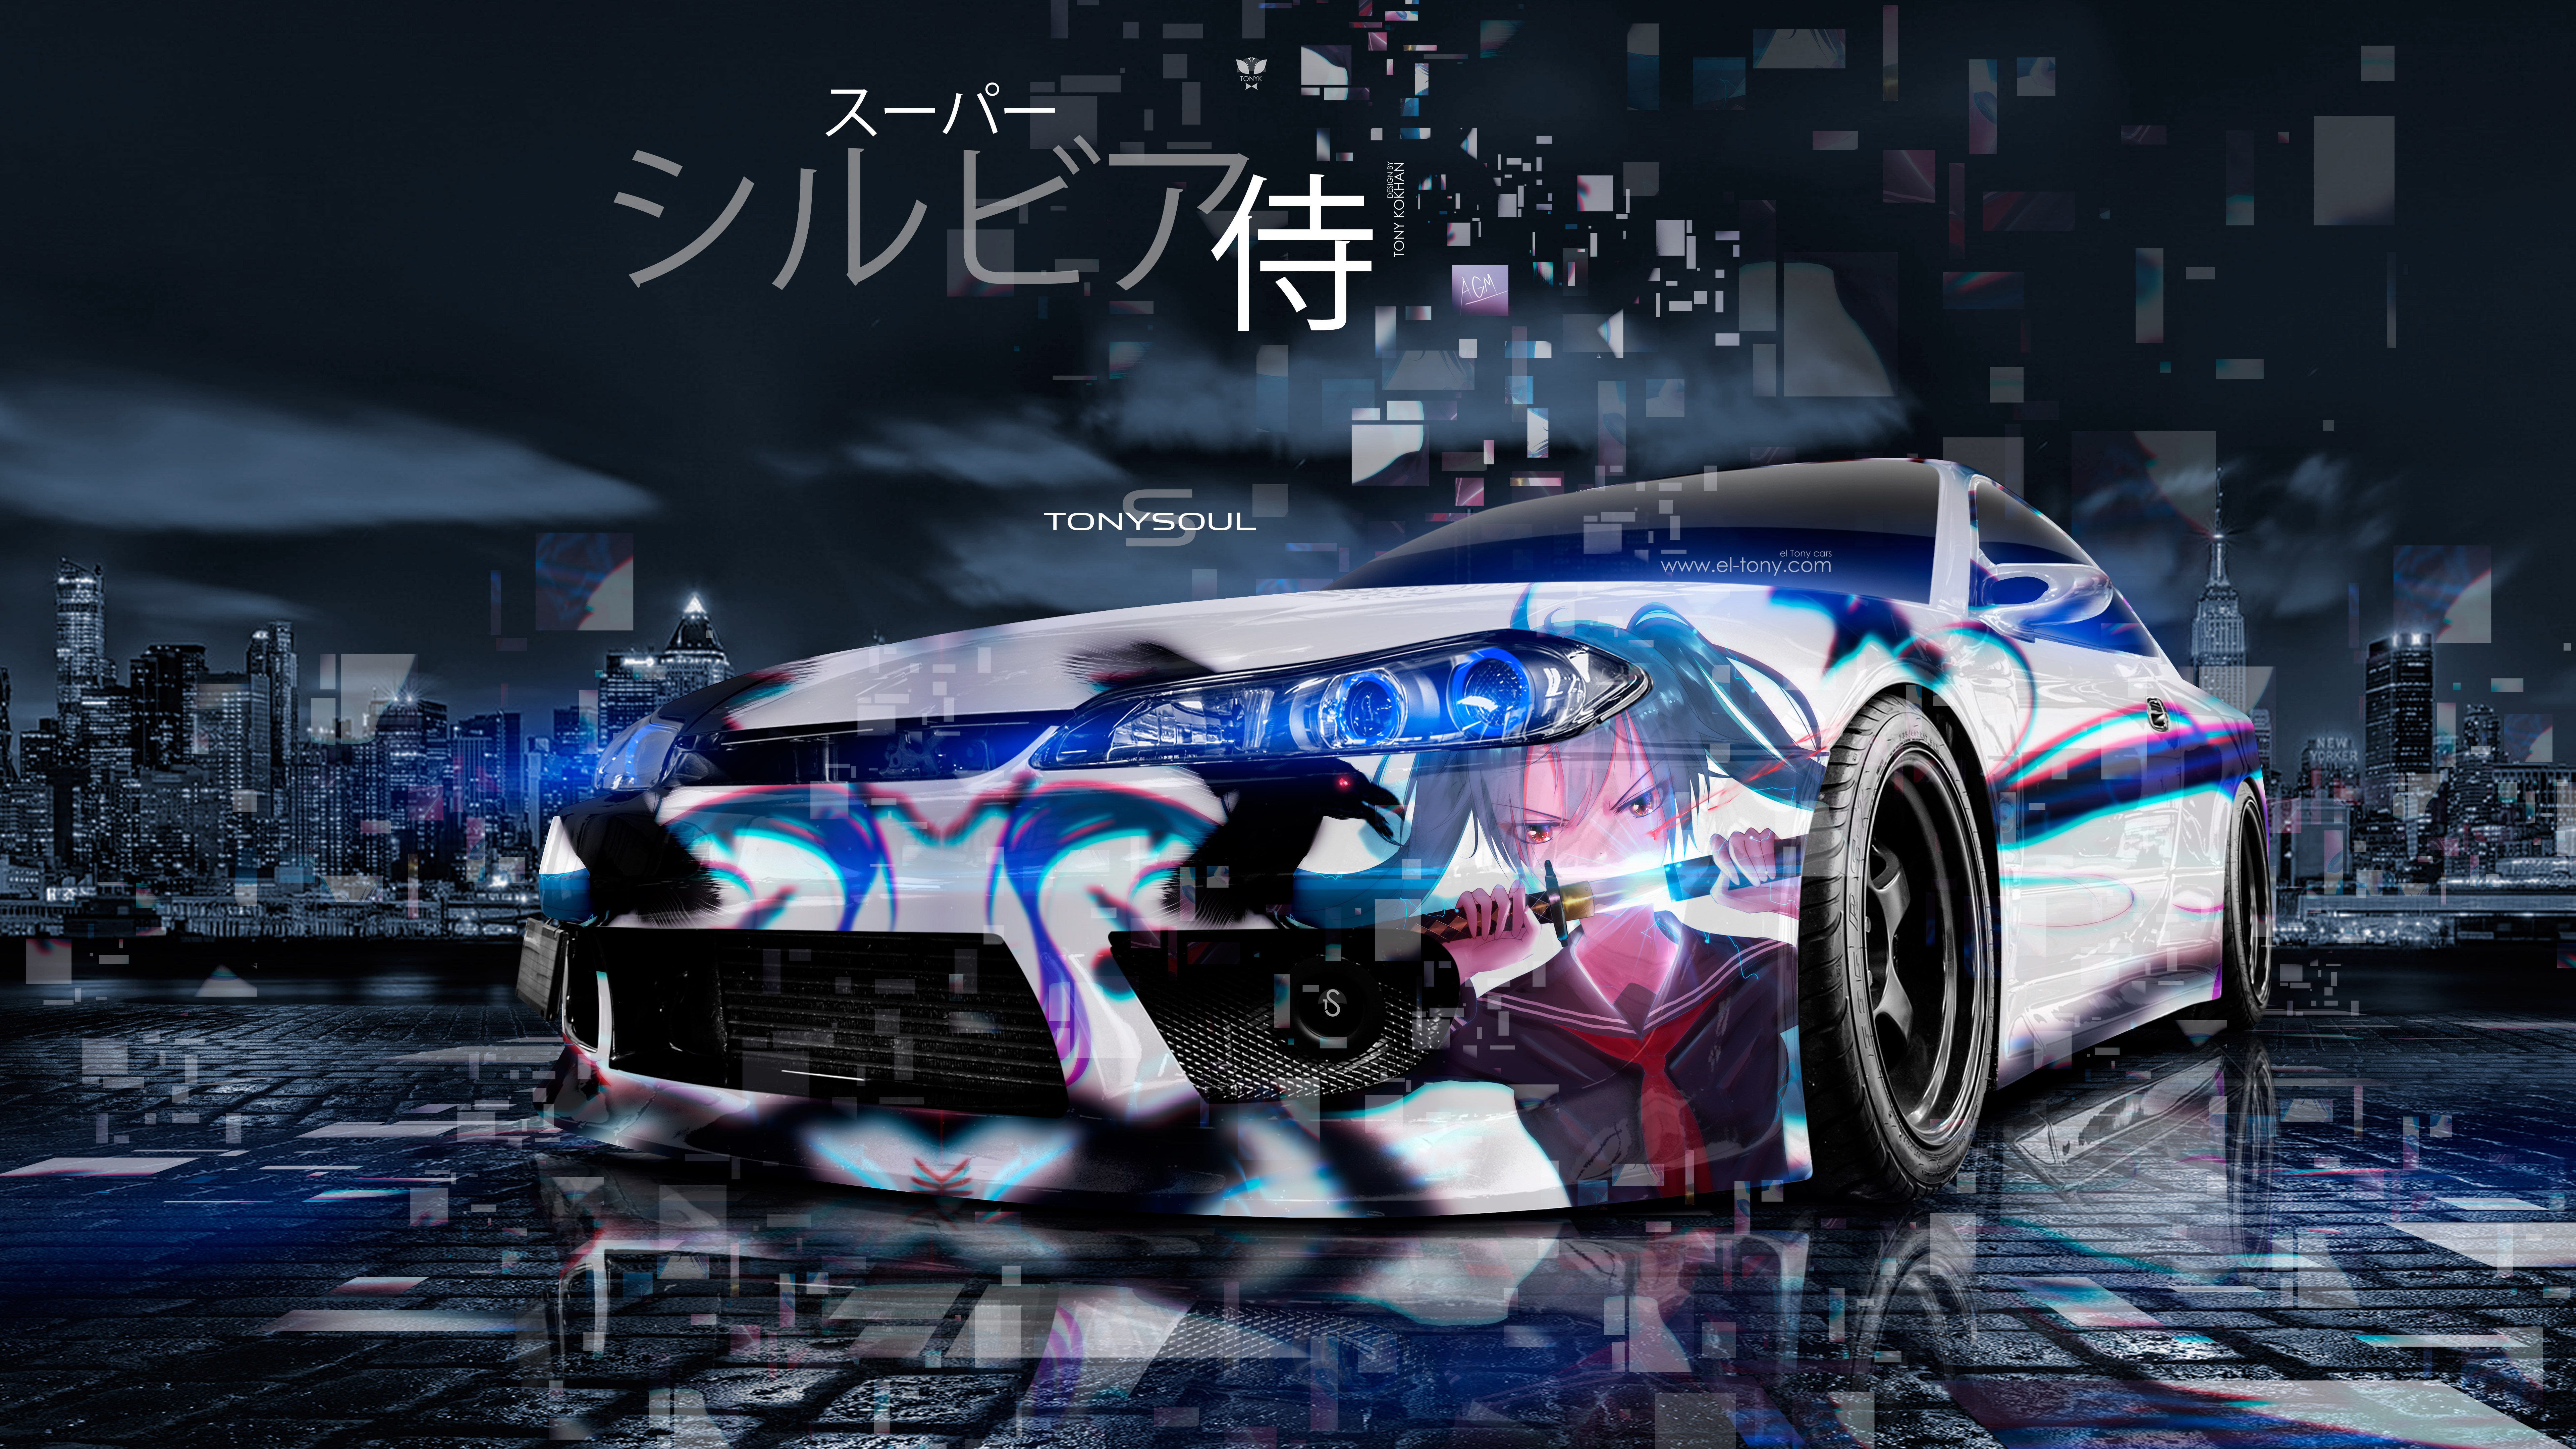 Nissan-Silvia-S15-JDM-Tuning-Anime-Girl-Super-Samurai-TonySoul-Japanese-Hieroglyph-Night-City-Car-2019-Multicolors-8K-Wallpapers-design-by-Tony-Kokhan-www.el-tony.com-image